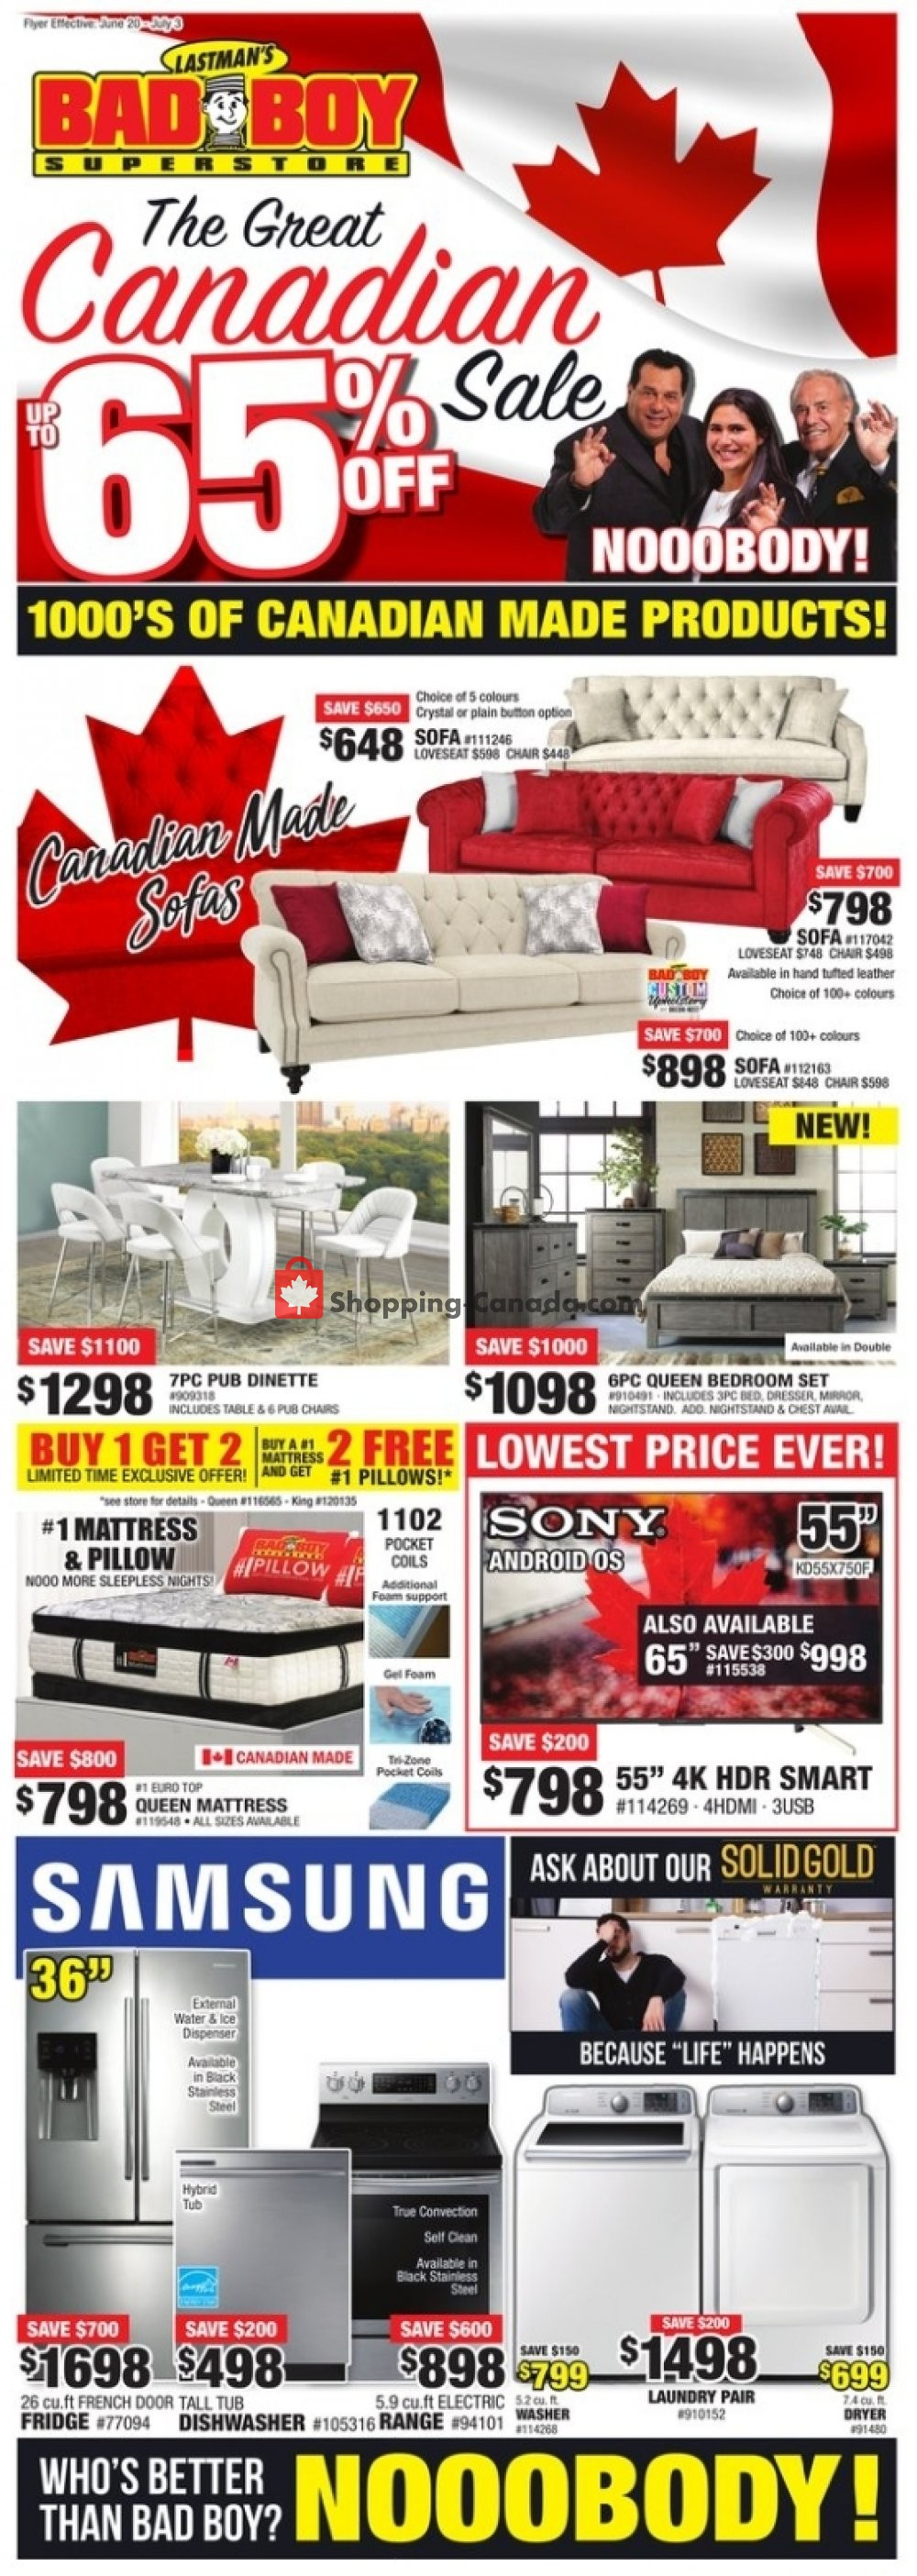 Flyer Lastman's Bad Boy Canada - from Thursday June 20, 2019 to Wednesday July 3, 2019